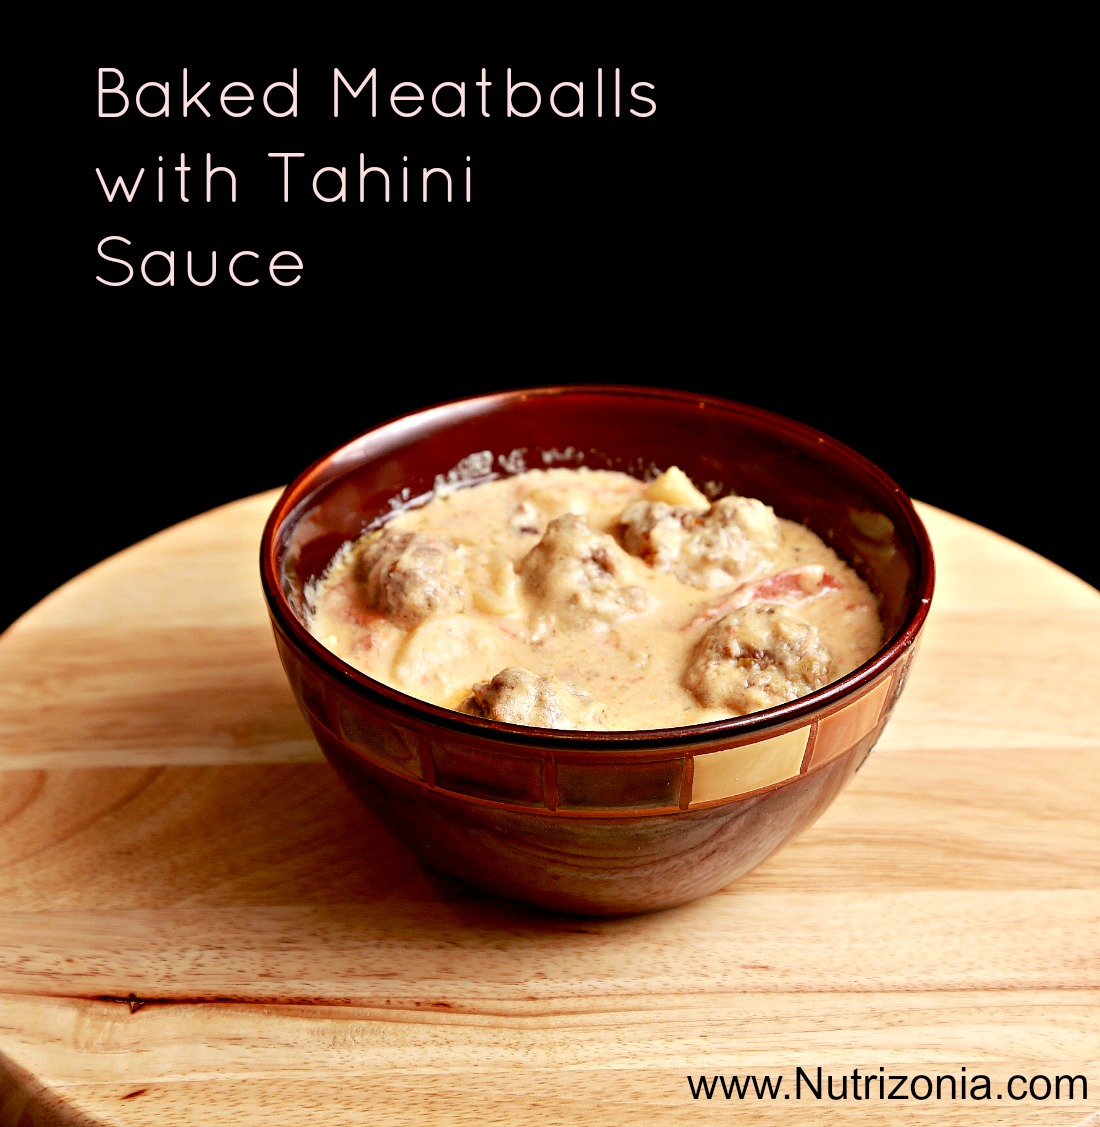 recipes using tahini